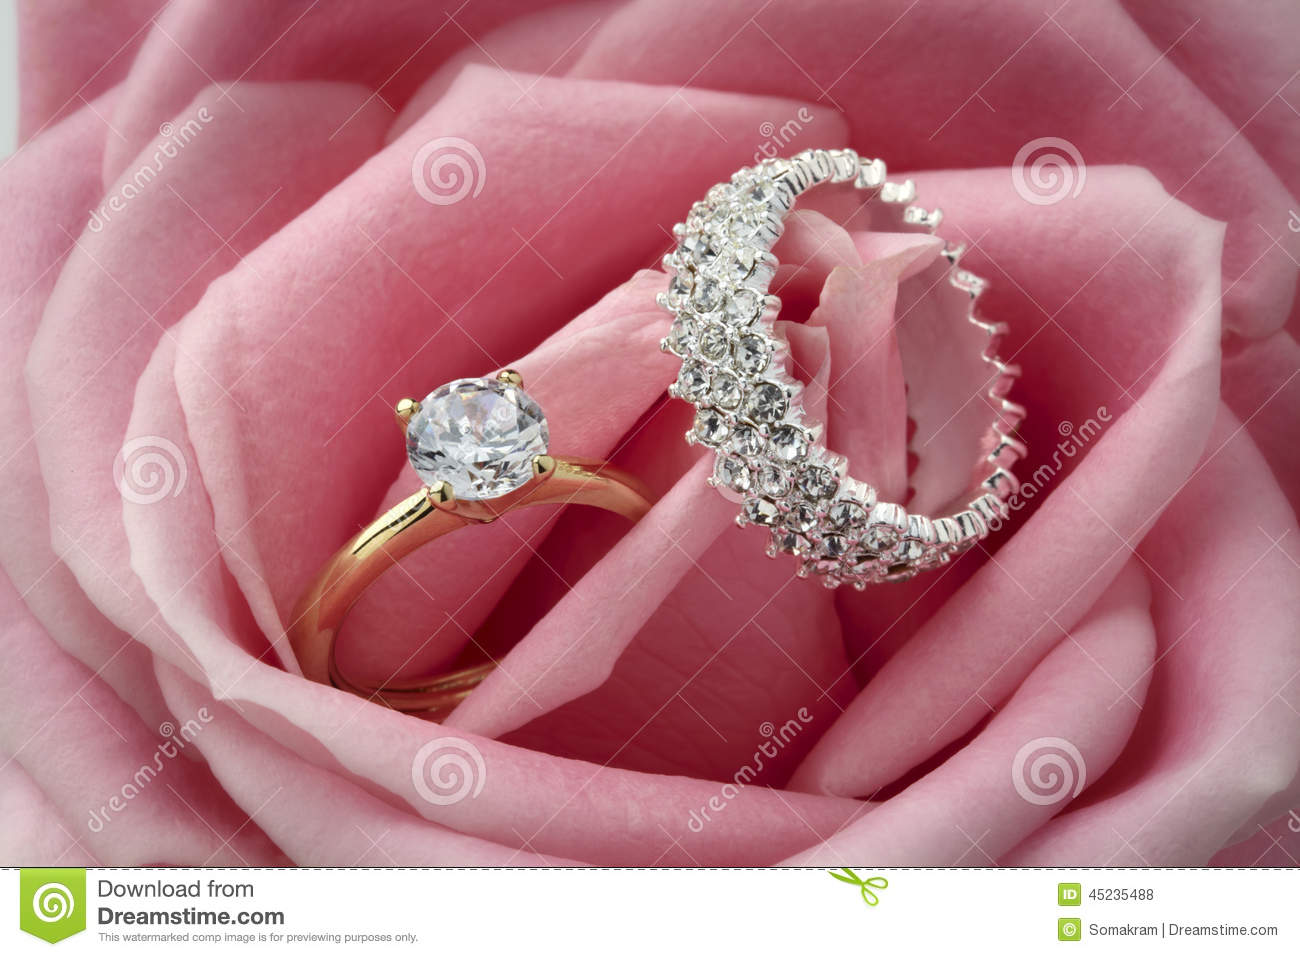 Diamond Rings and Rose stock photo. Image of ring, devotion - 45235488